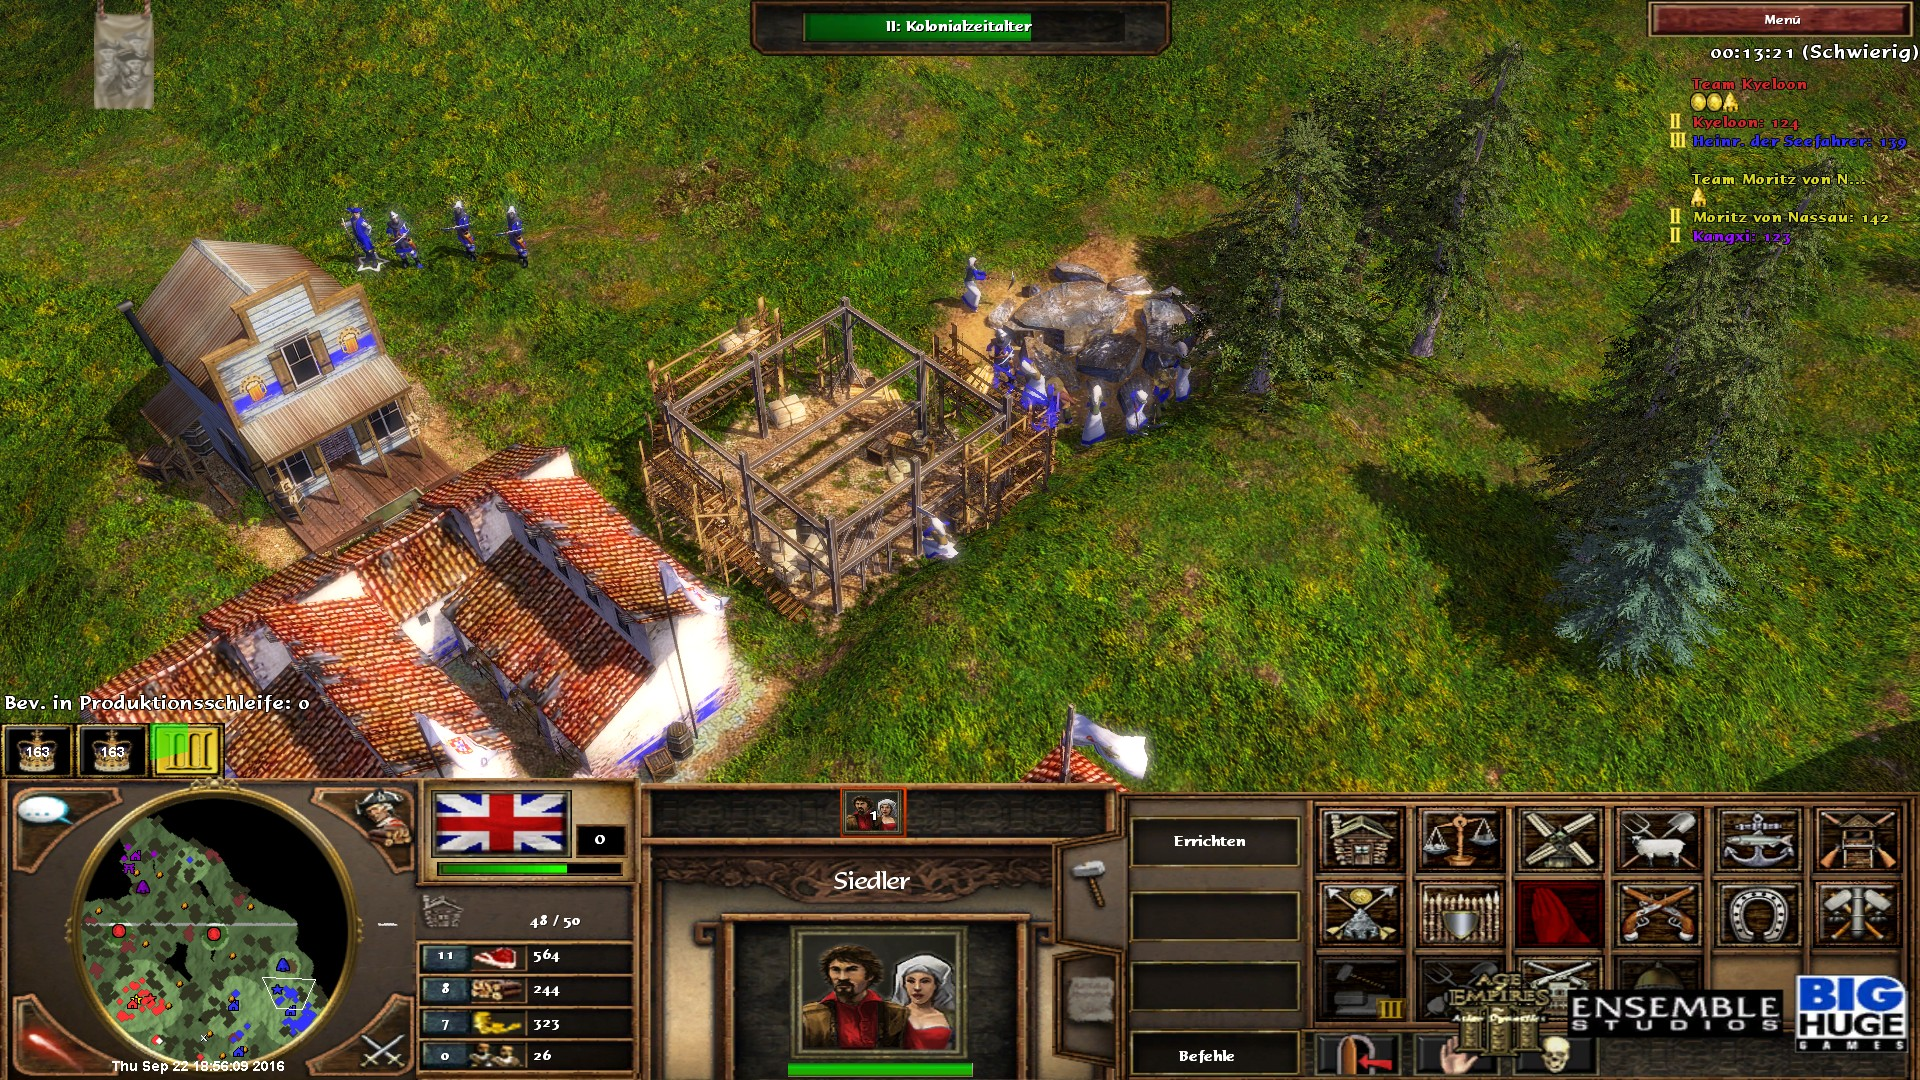 age of empires 2 matchmaking When microsoft abandoned support for online multiplayer matches in the popular age of empires and age of kings games in 2006, the player community responded by coding their own matchmaking clients - and built loyal, hardcore communities of players who love the classic rts games.